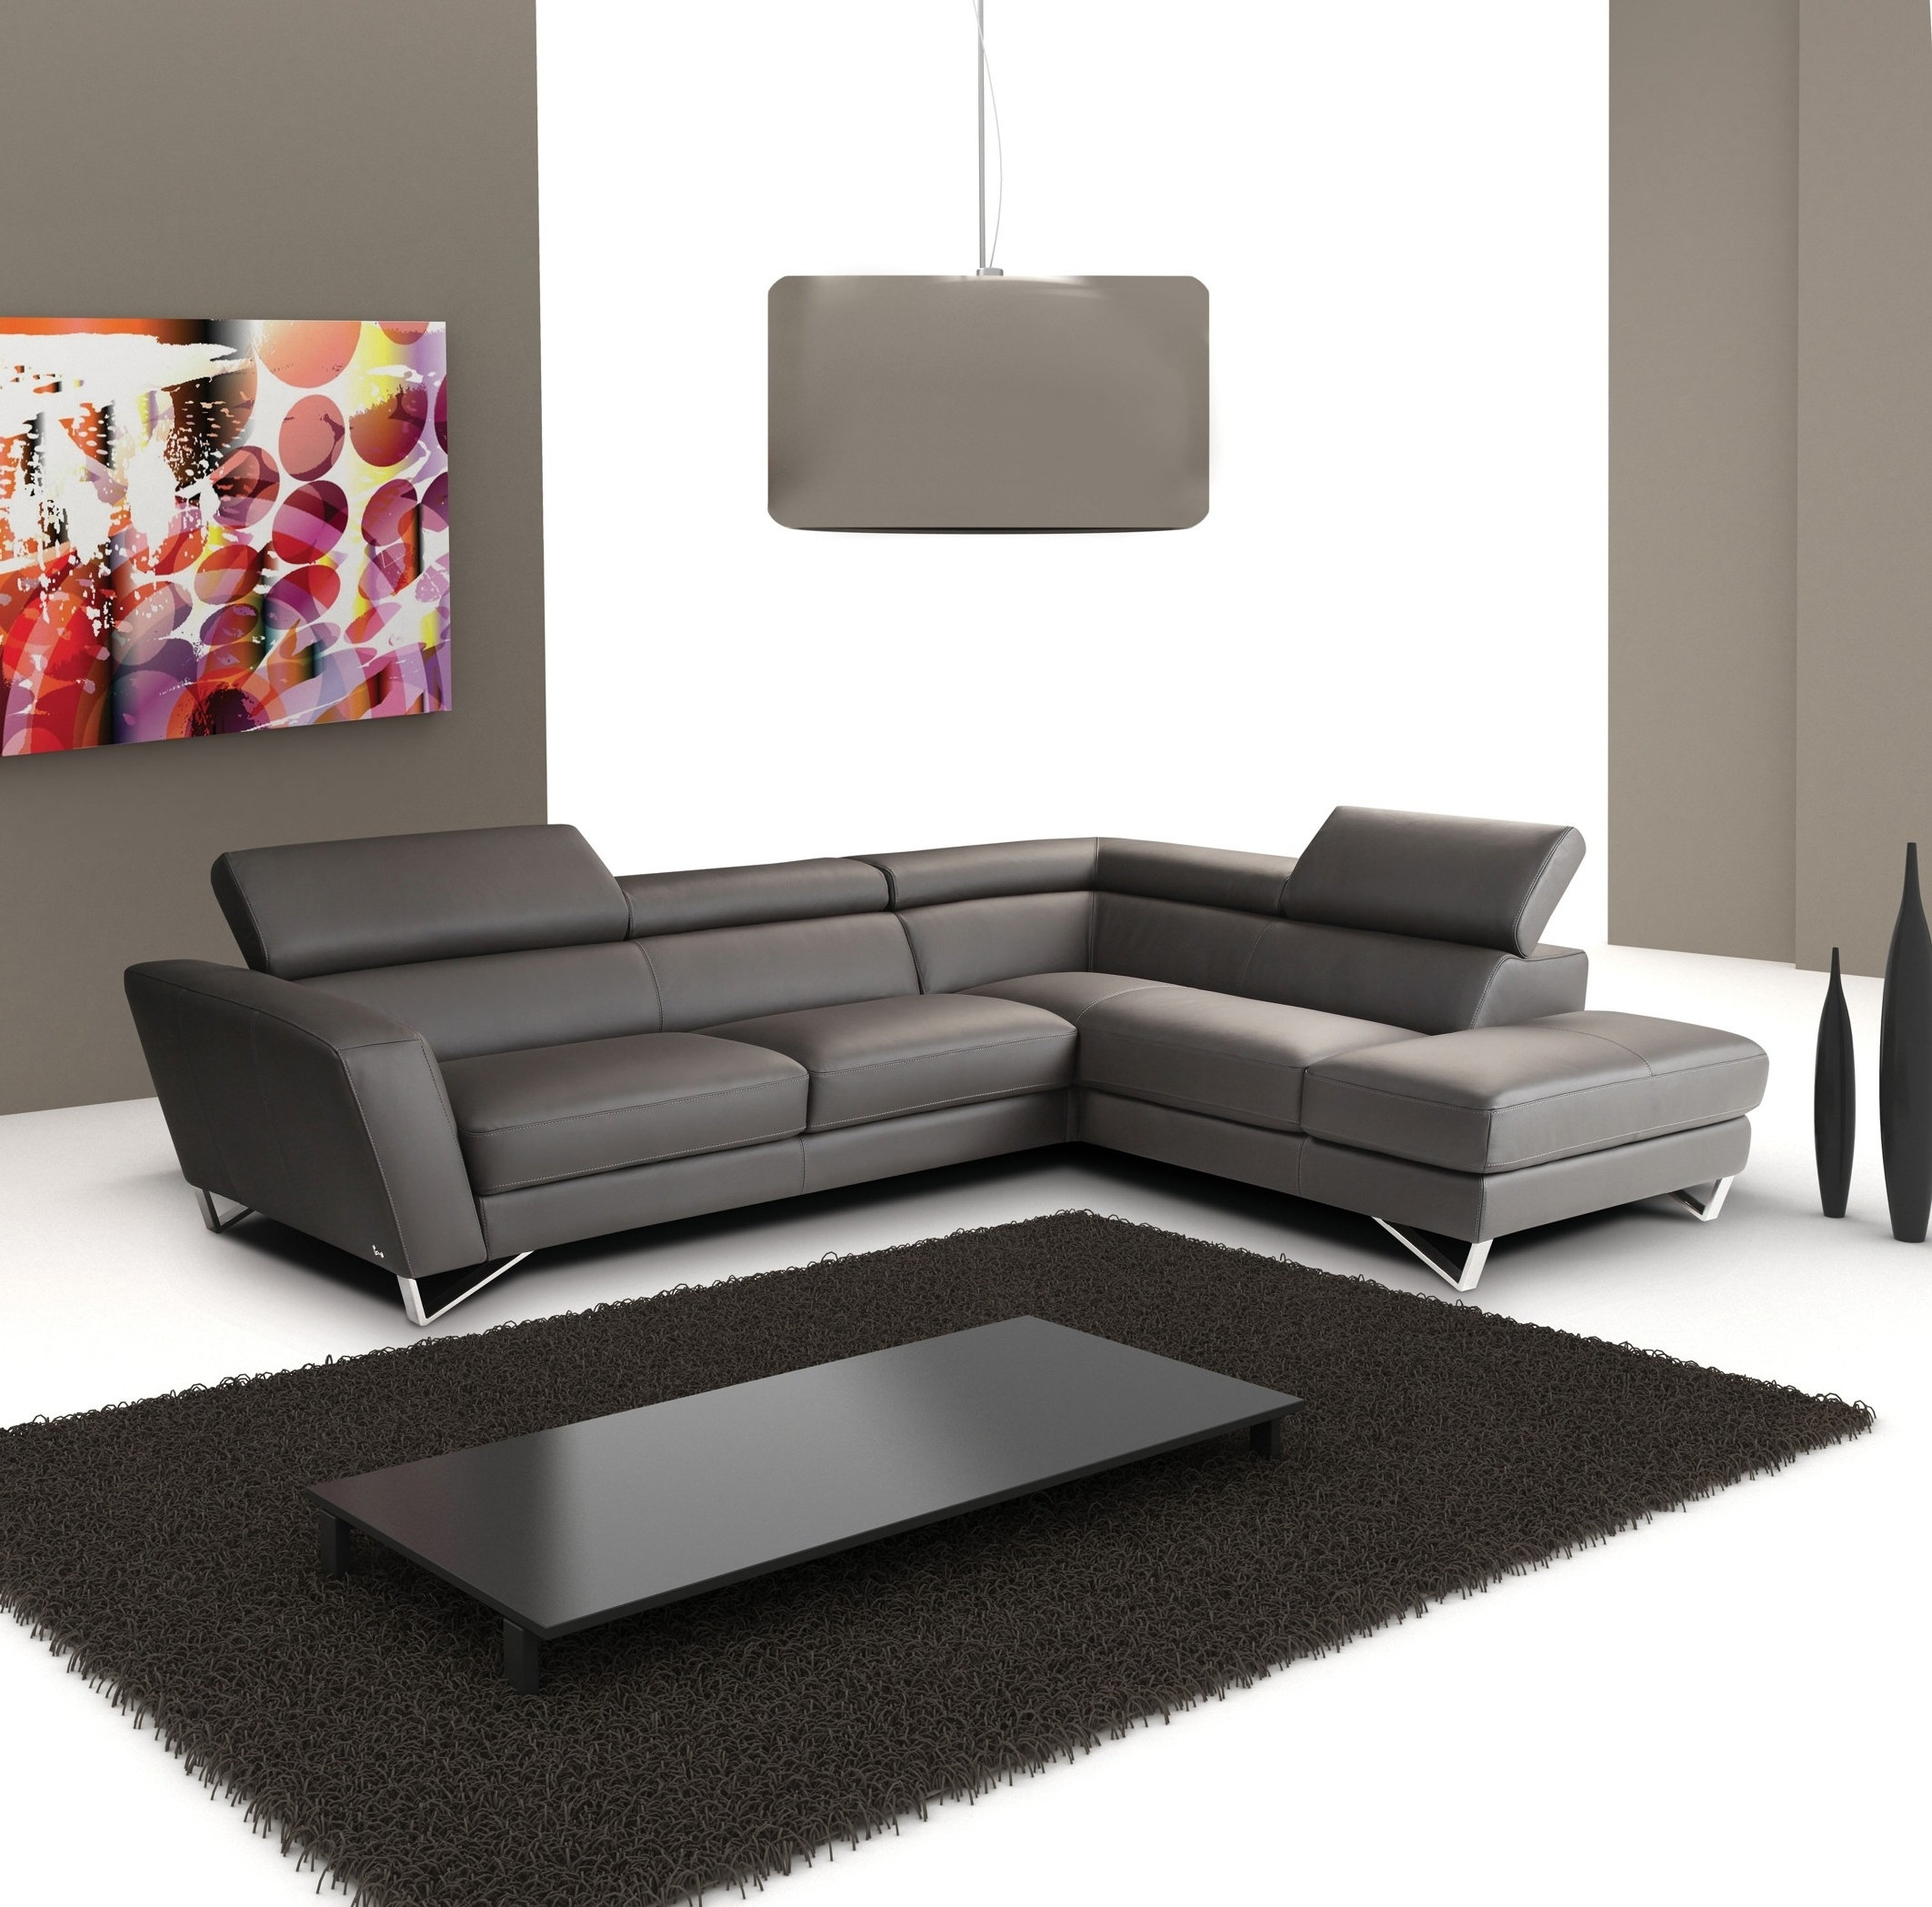 Leather Sectional Couches For Sale Sofas Sofa Couch Amazon Sam S For Latest Sectional Sofas At Amazon (View 8 of 20)